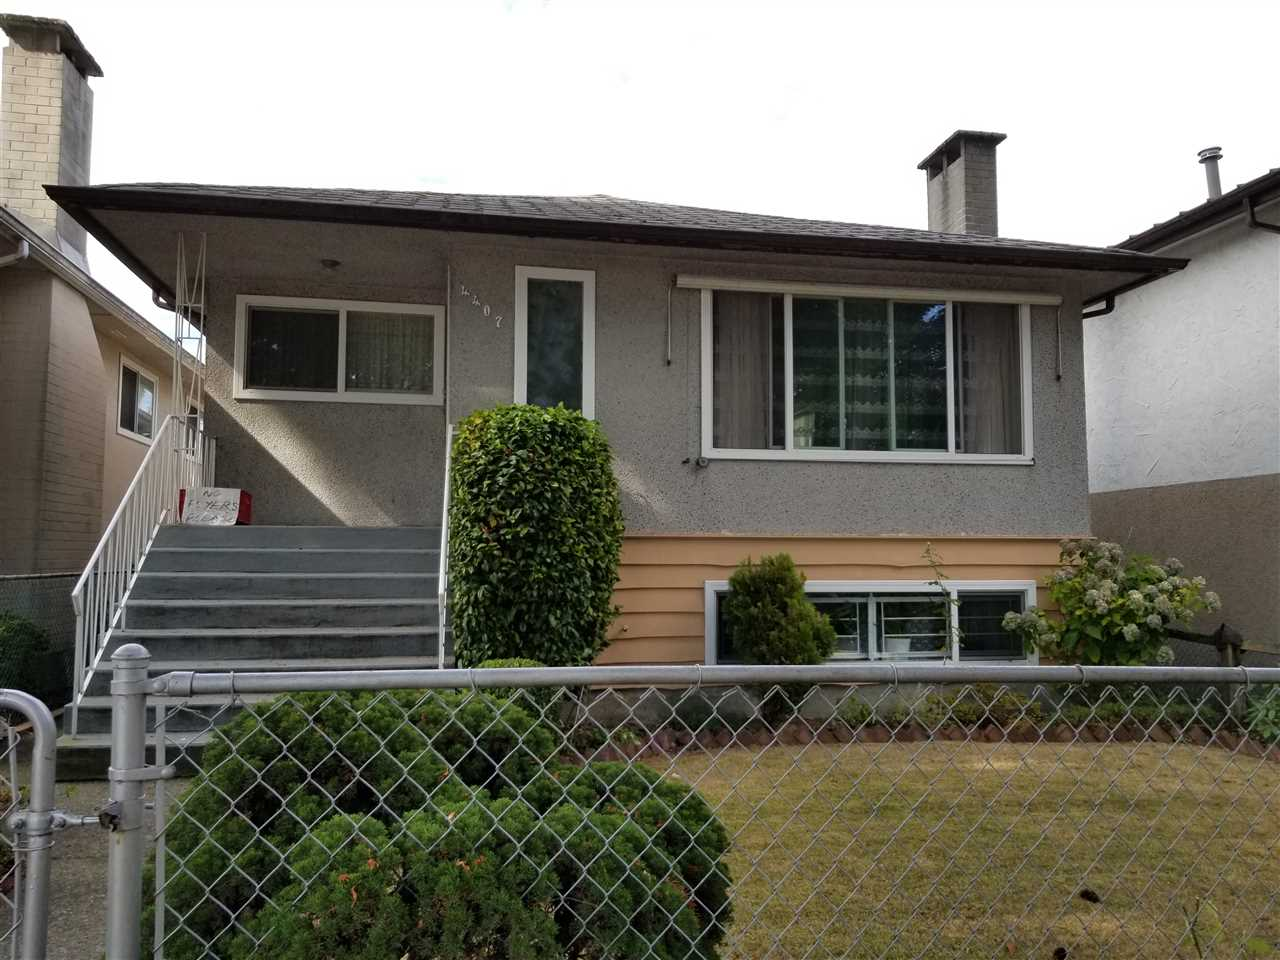 Prime North Burnaby location, absolutely well kept and ready to move in house. 3 bedrooms up &3 bedrooms down. Basement suite can be a great mortgage helper. Features include double vinyl windows(2009), roof(2003), hot water tank(2007), and much more. Nice size deck off the kitchen. Off street parking available at the front of house. It is located closed to Brentwood Mall and Willingdon Community Centre. Builder Alert! Great potential building lot. Must see to appreciate. Don't wait! This property won't last long.